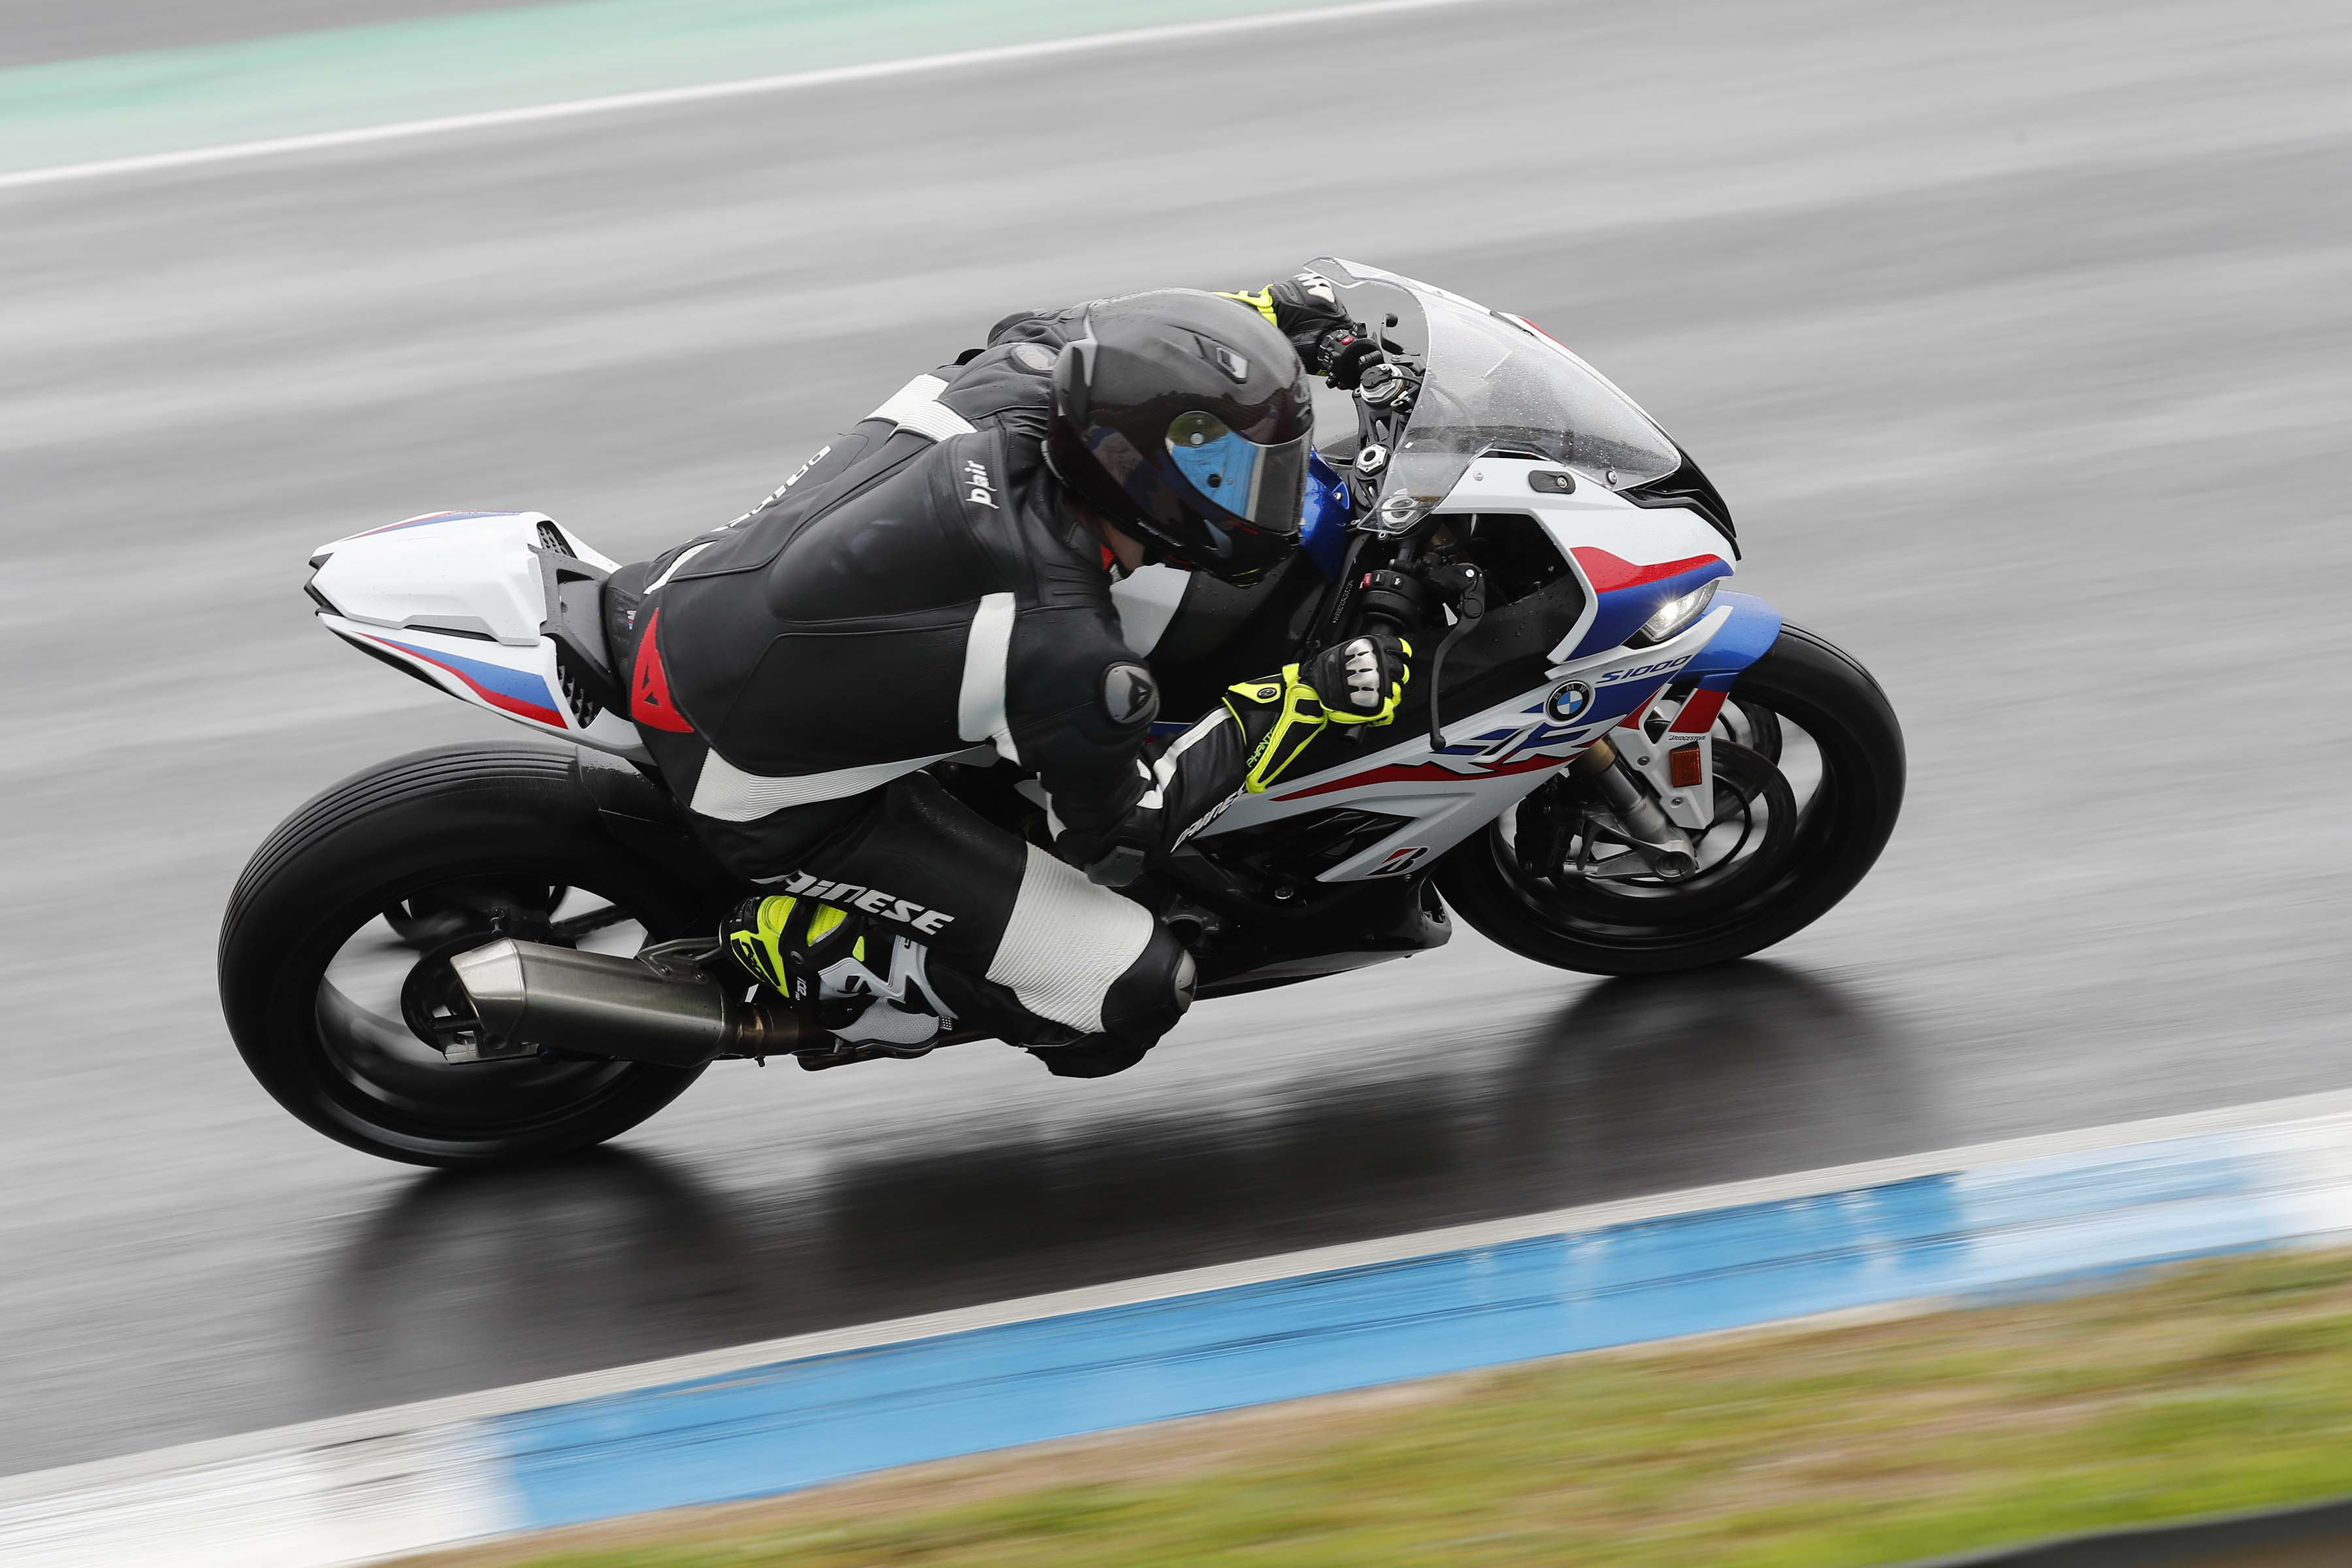 What Its Like to Ride the 2019 BMW S1000RR, A Wet Review